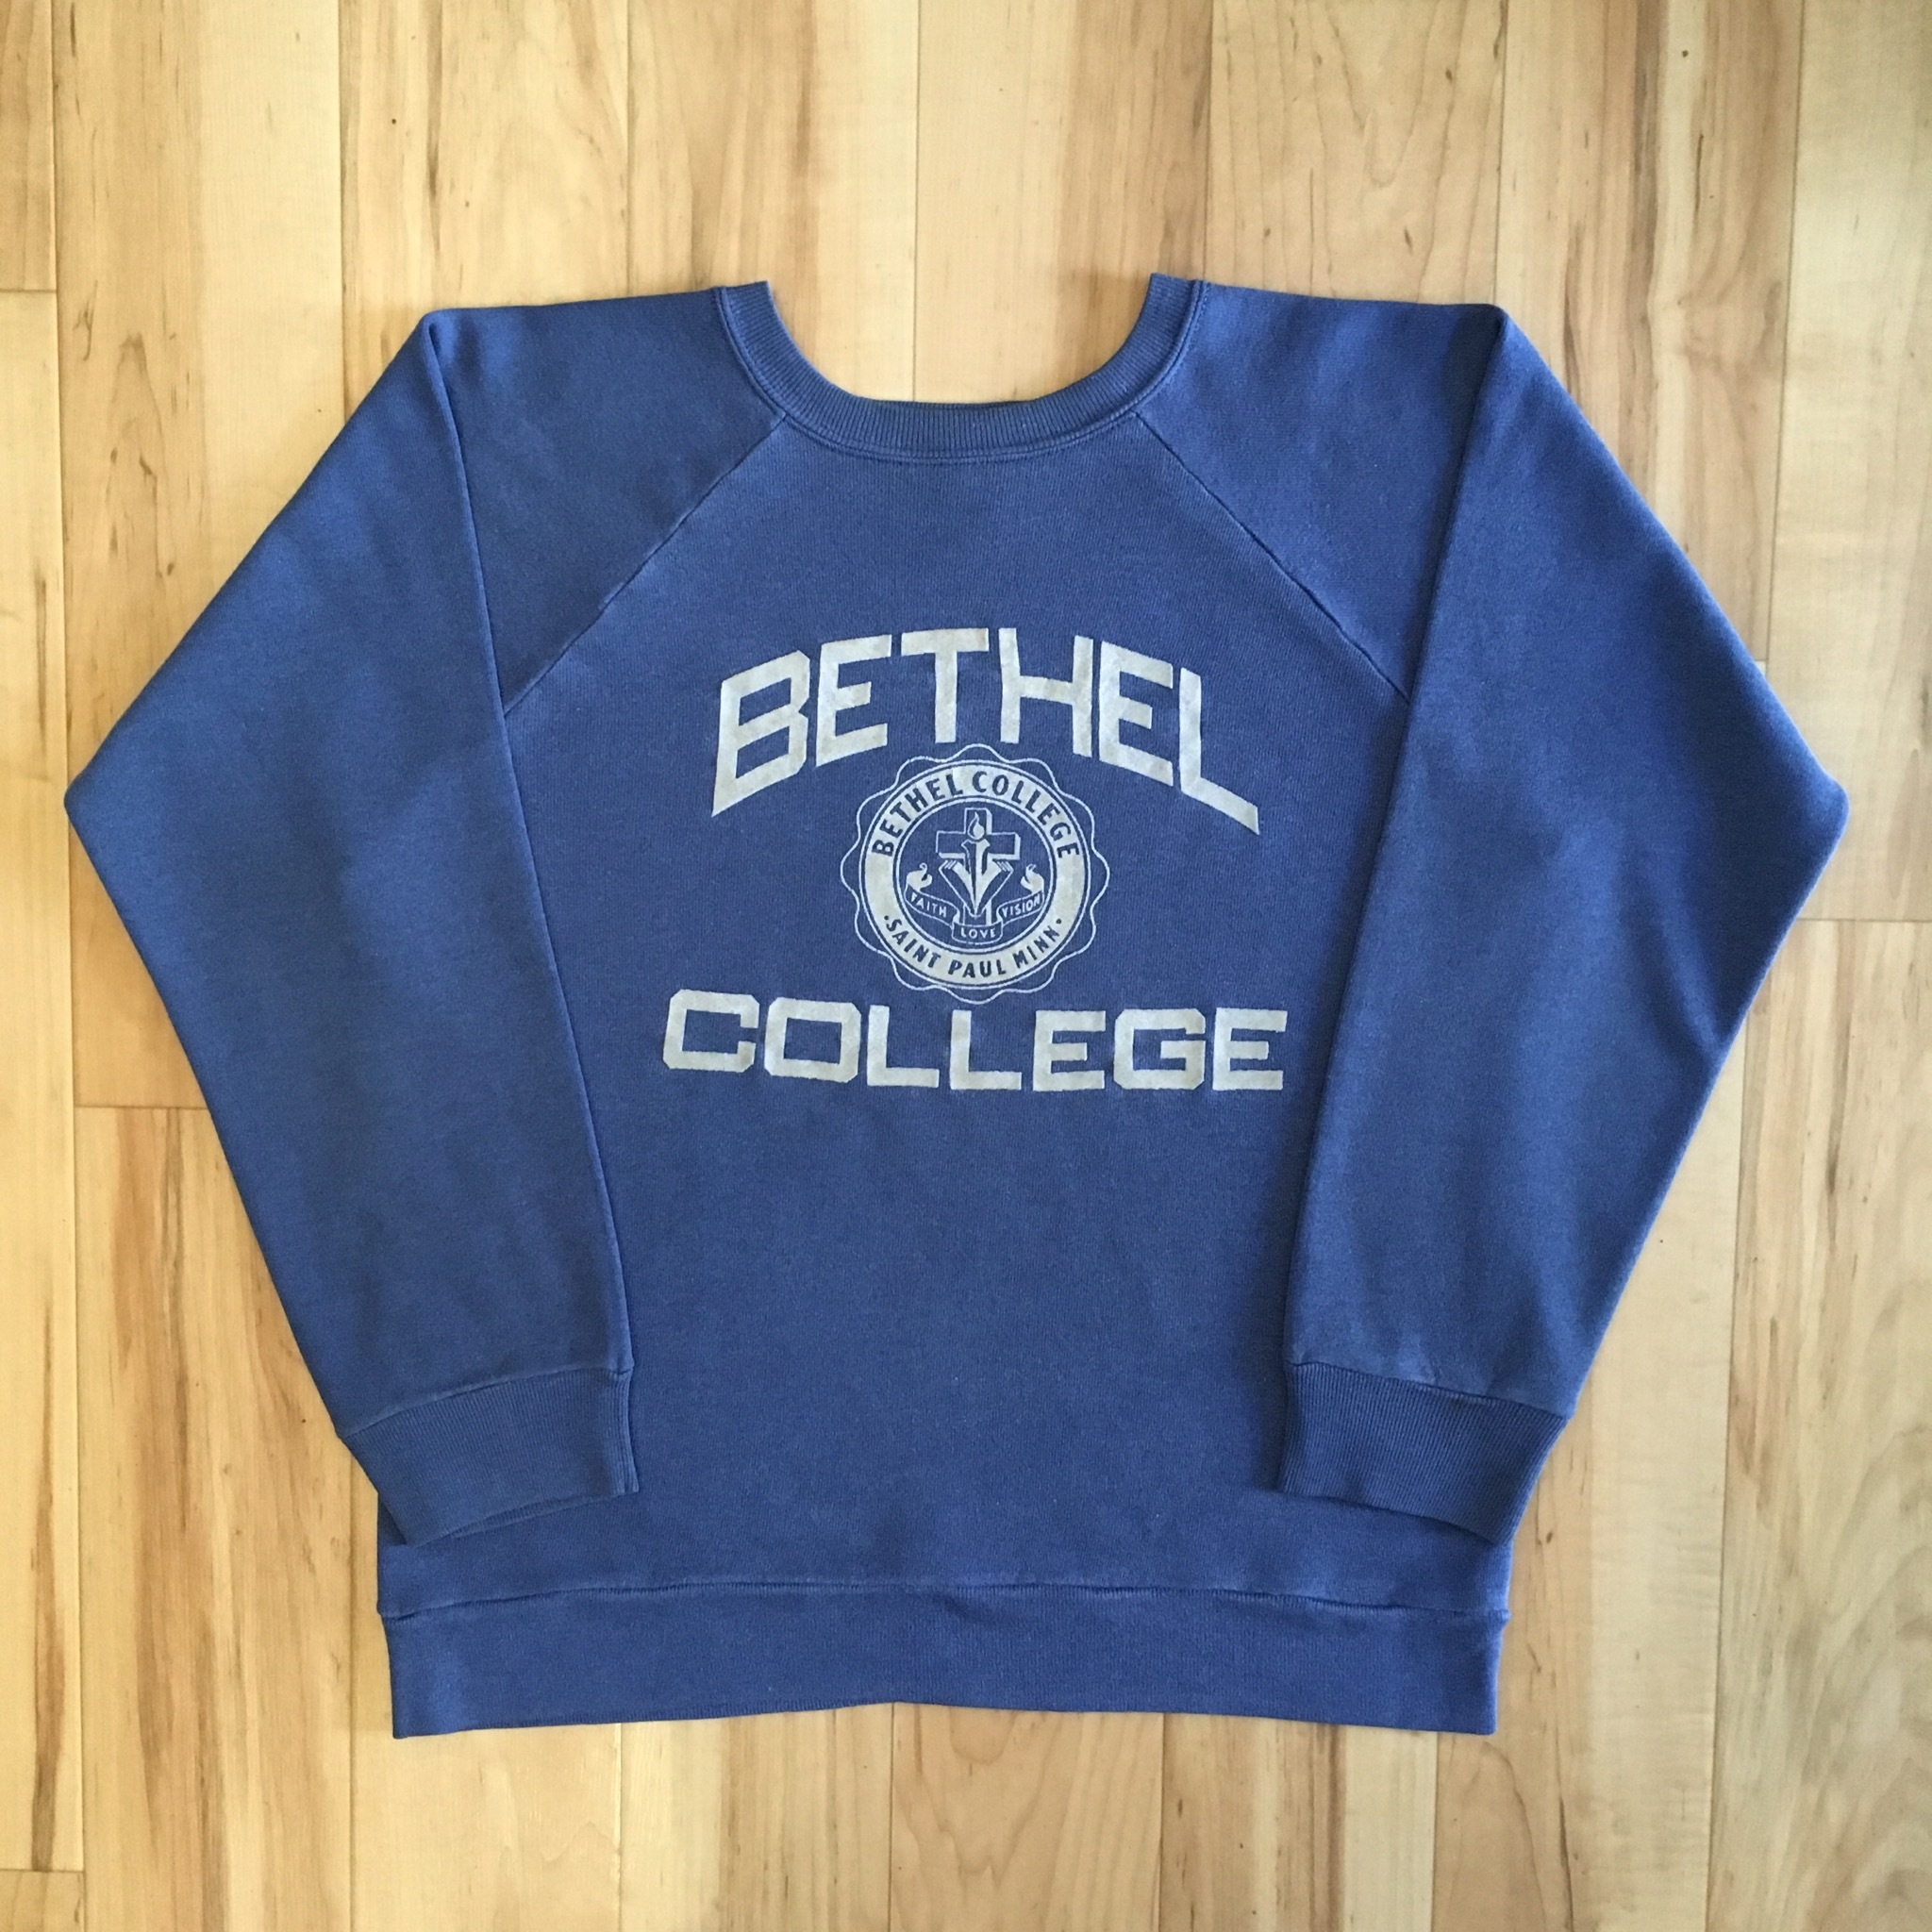 80's Champion BETHEL COLLEGE Ragulan Sweat